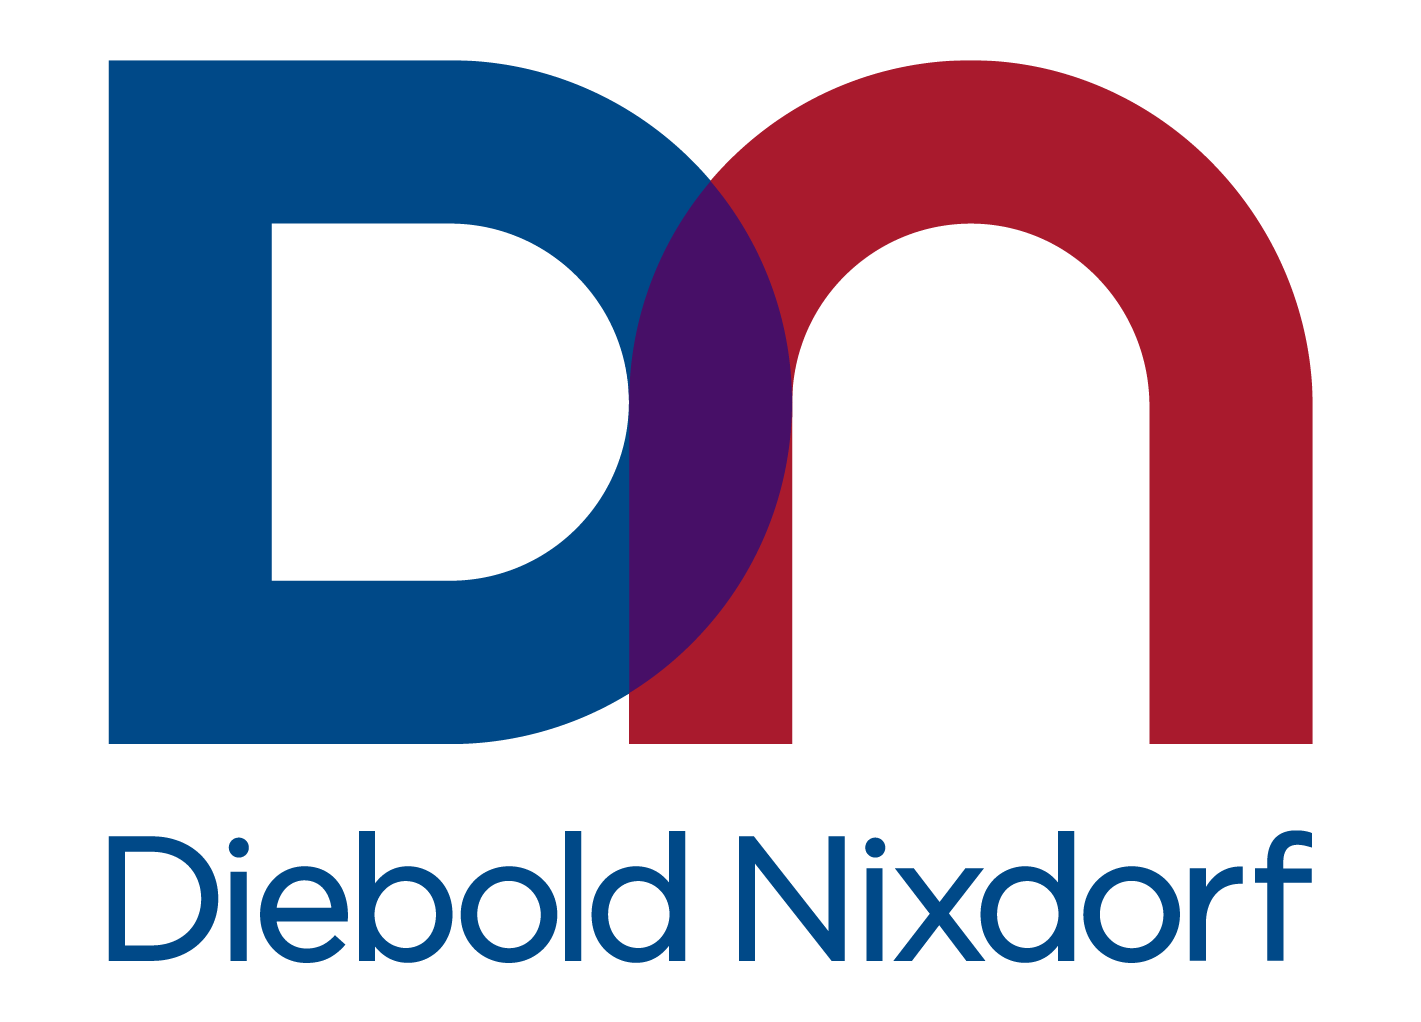 Diebold Nixdorf Provides COVID-19-Related Business Update